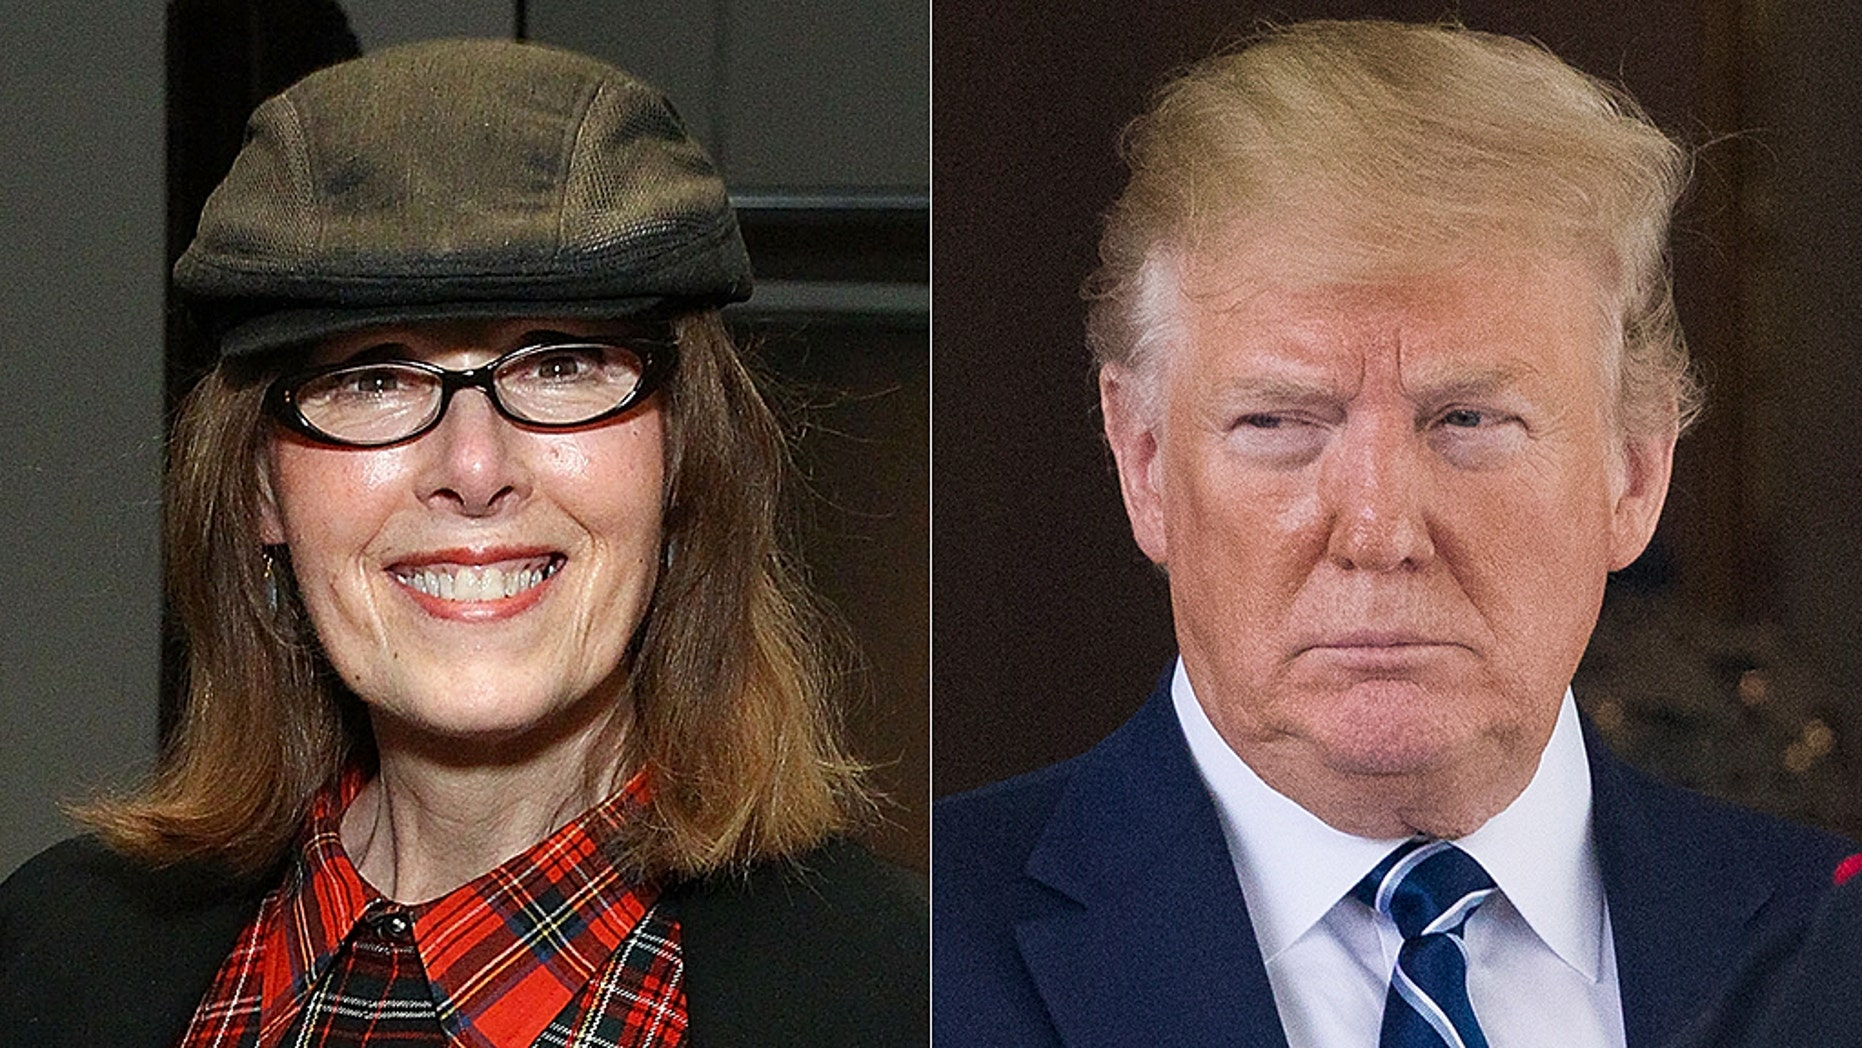 E. Jean Carroll, alongtime advice columnist, is accusing President Trump of sexually assaulting her in a New York City dressing room two decades ago. (Getty, Associated Press).